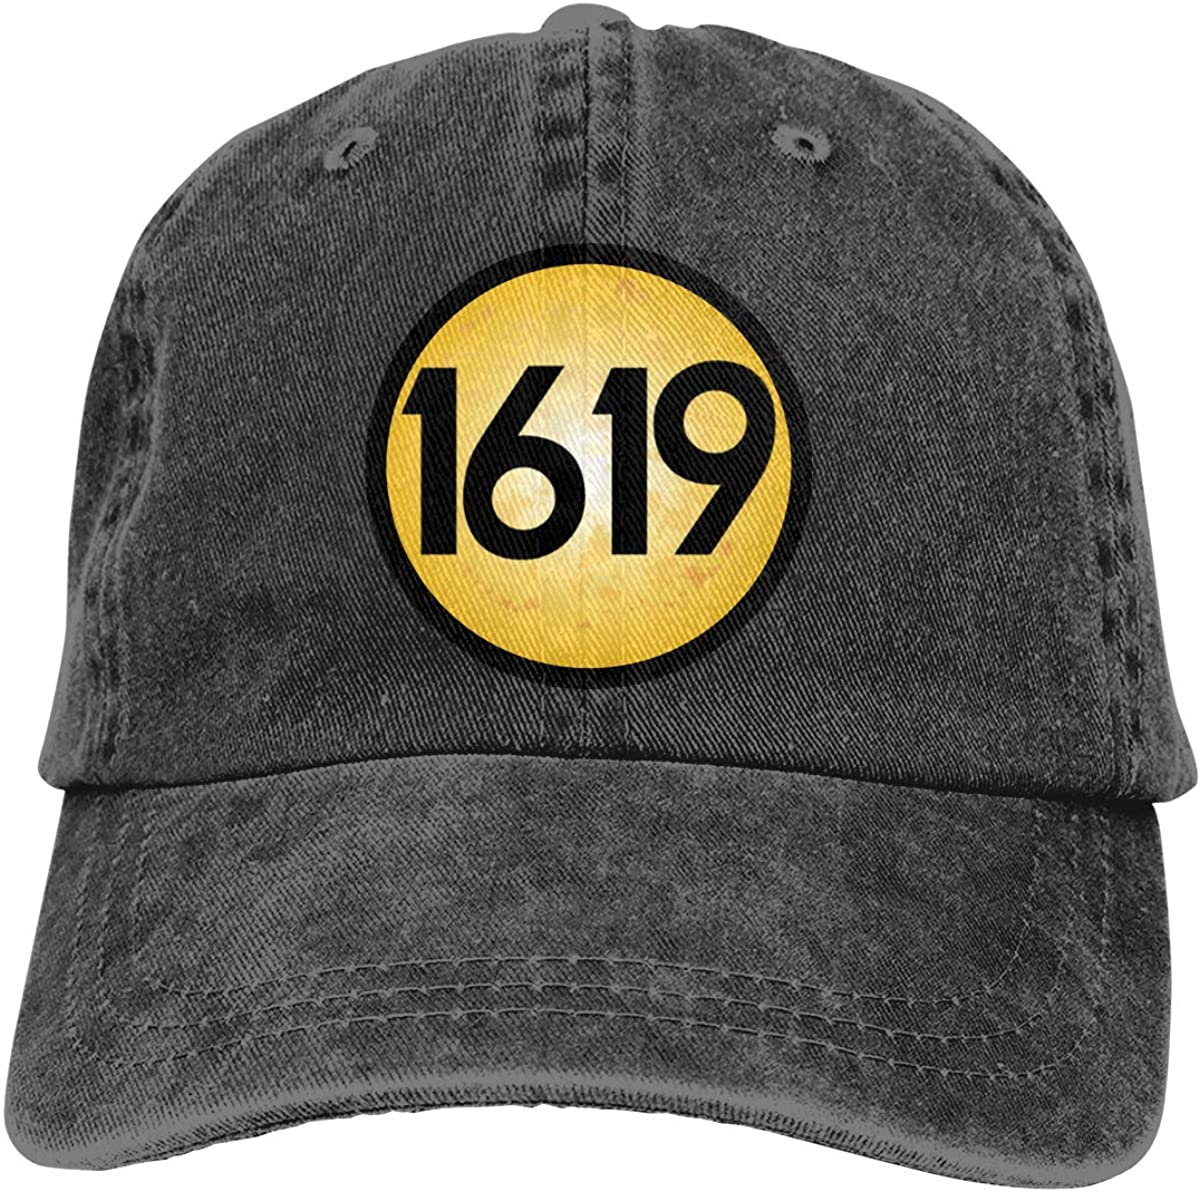 1619 Our Ancestors African American Pride Black History Denim Hats Cowboy Hats Dad Hat Fitted Cap